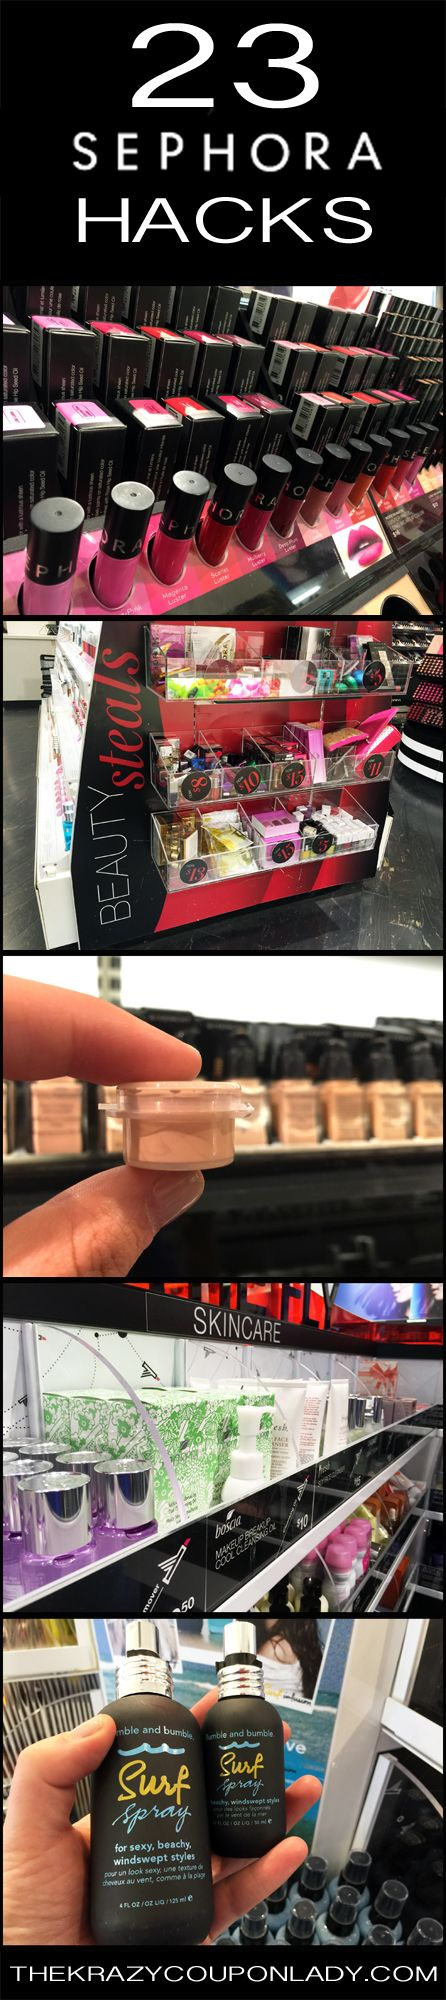 23 Insider Hacks from a Sephora Employee from http://thekrazycouponlady.com/